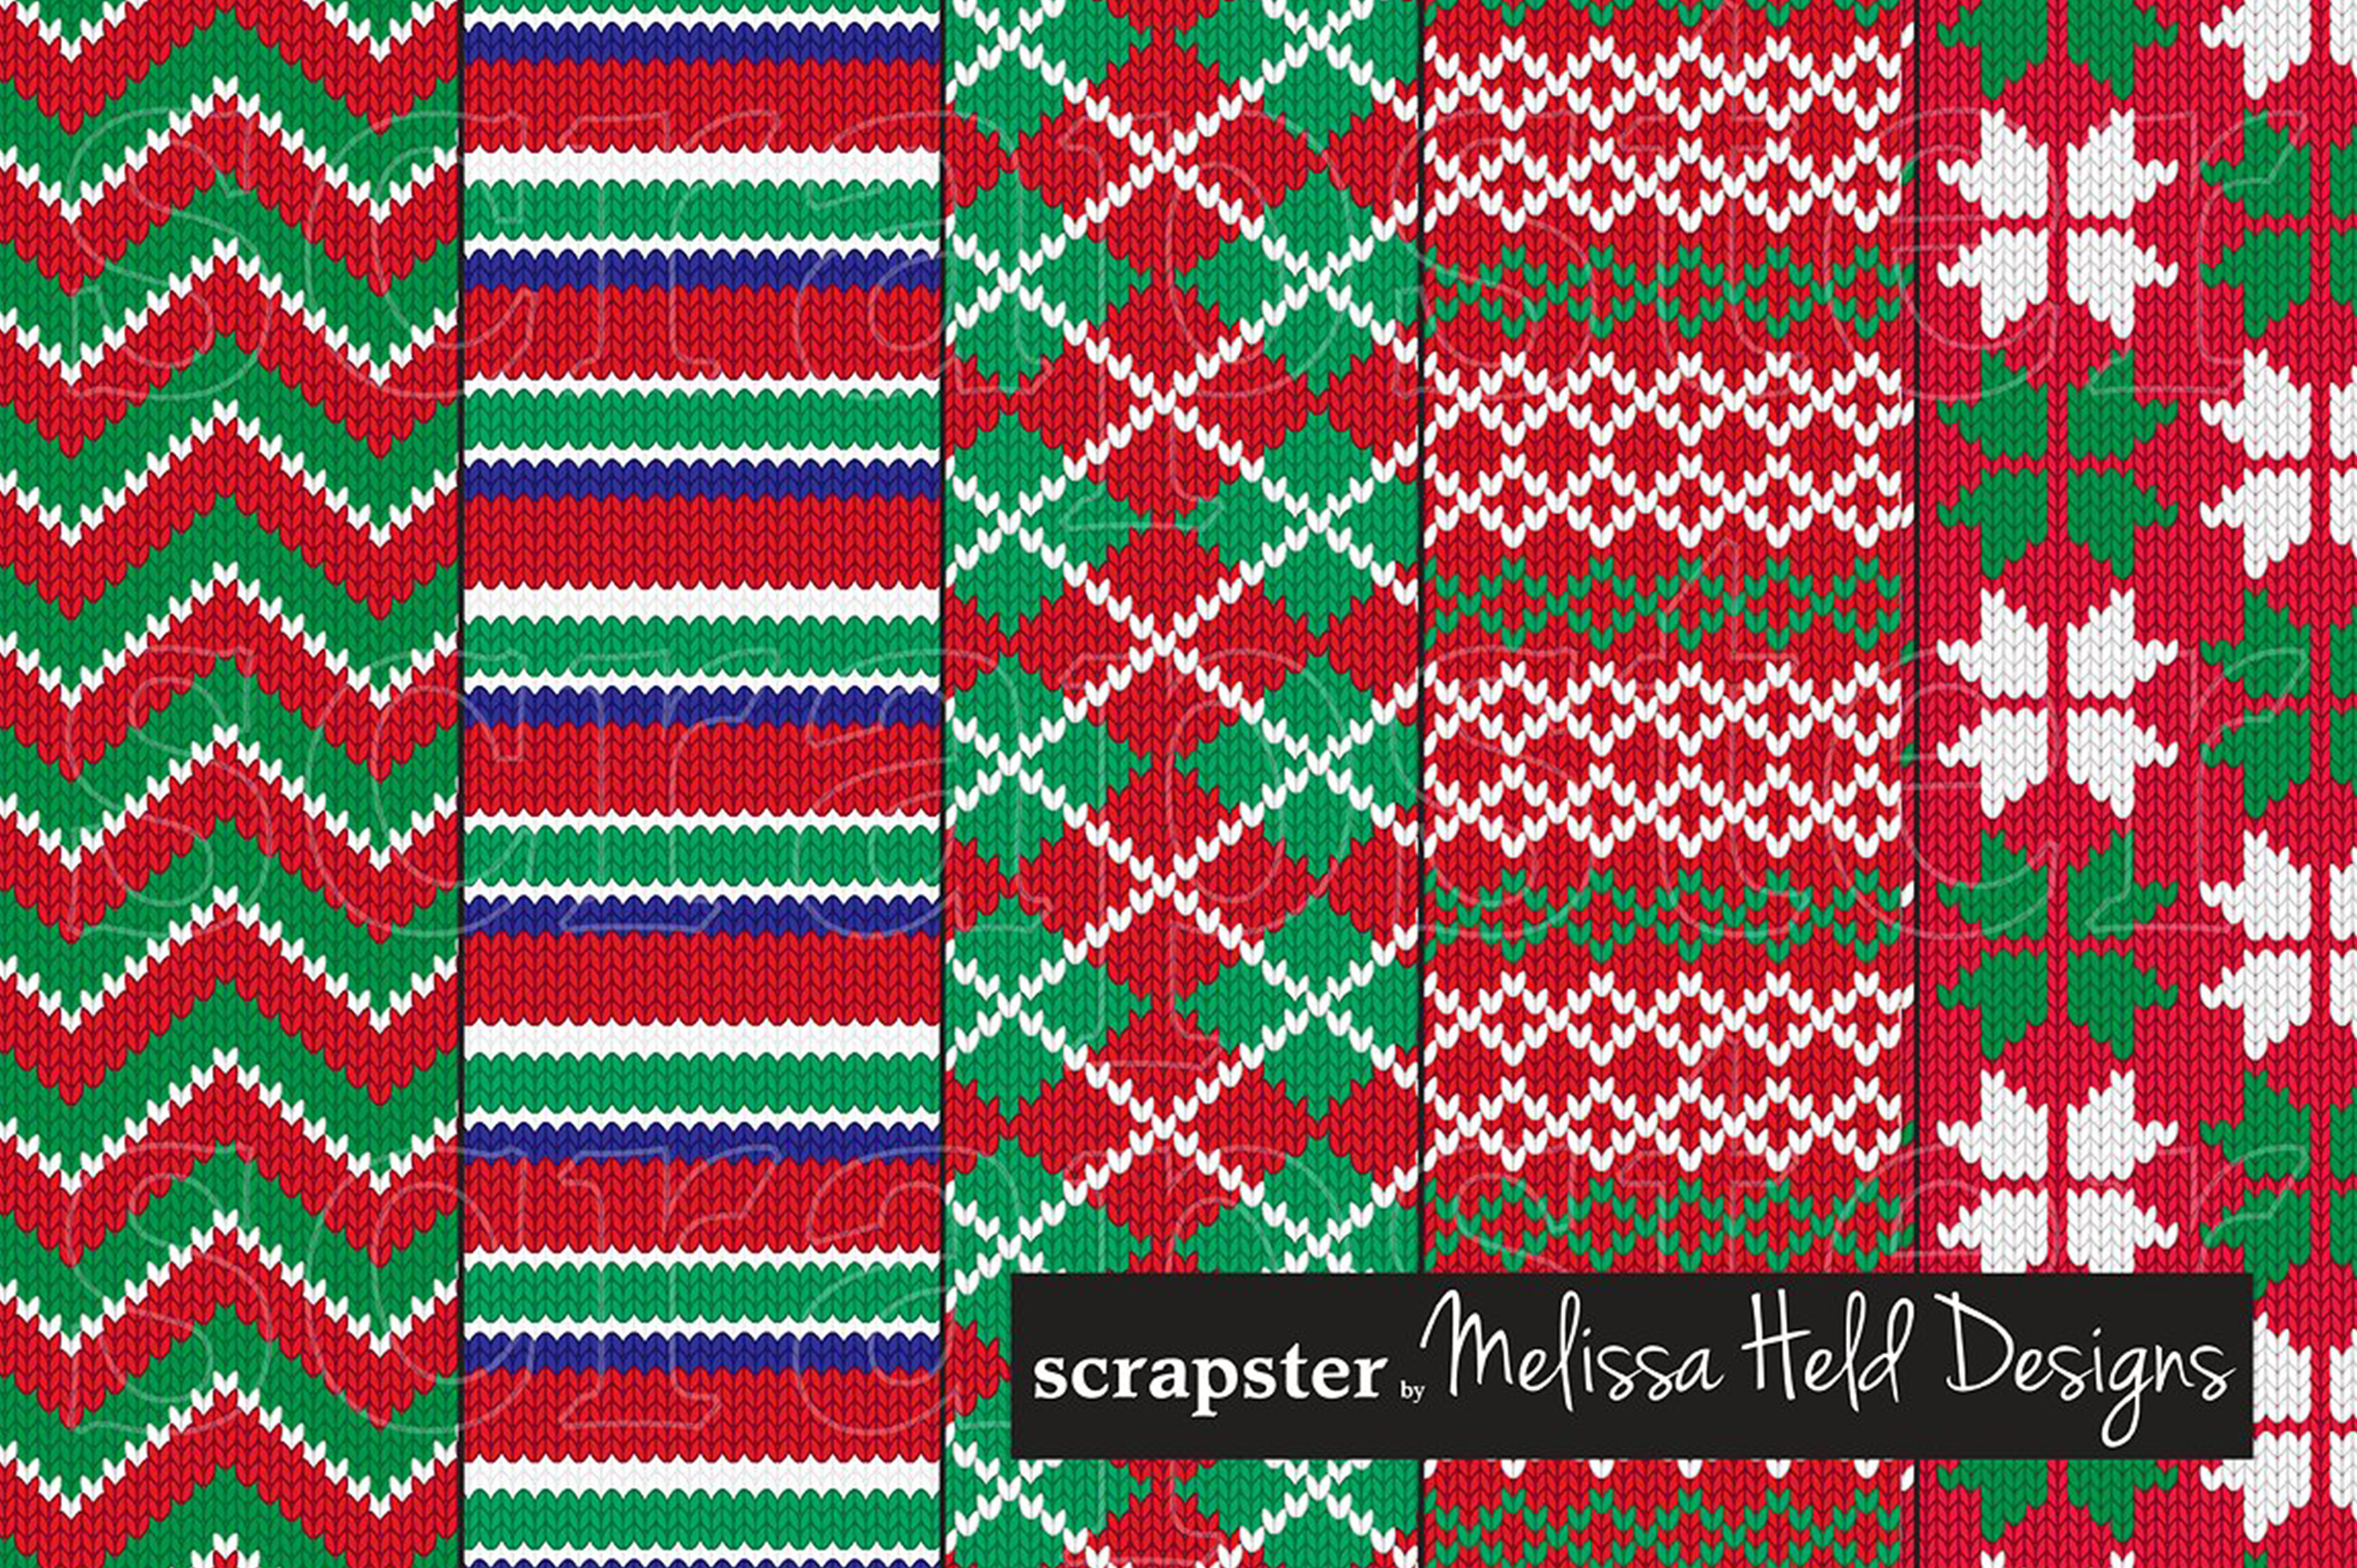 Nordic Knit Christmas Patterns example image 2